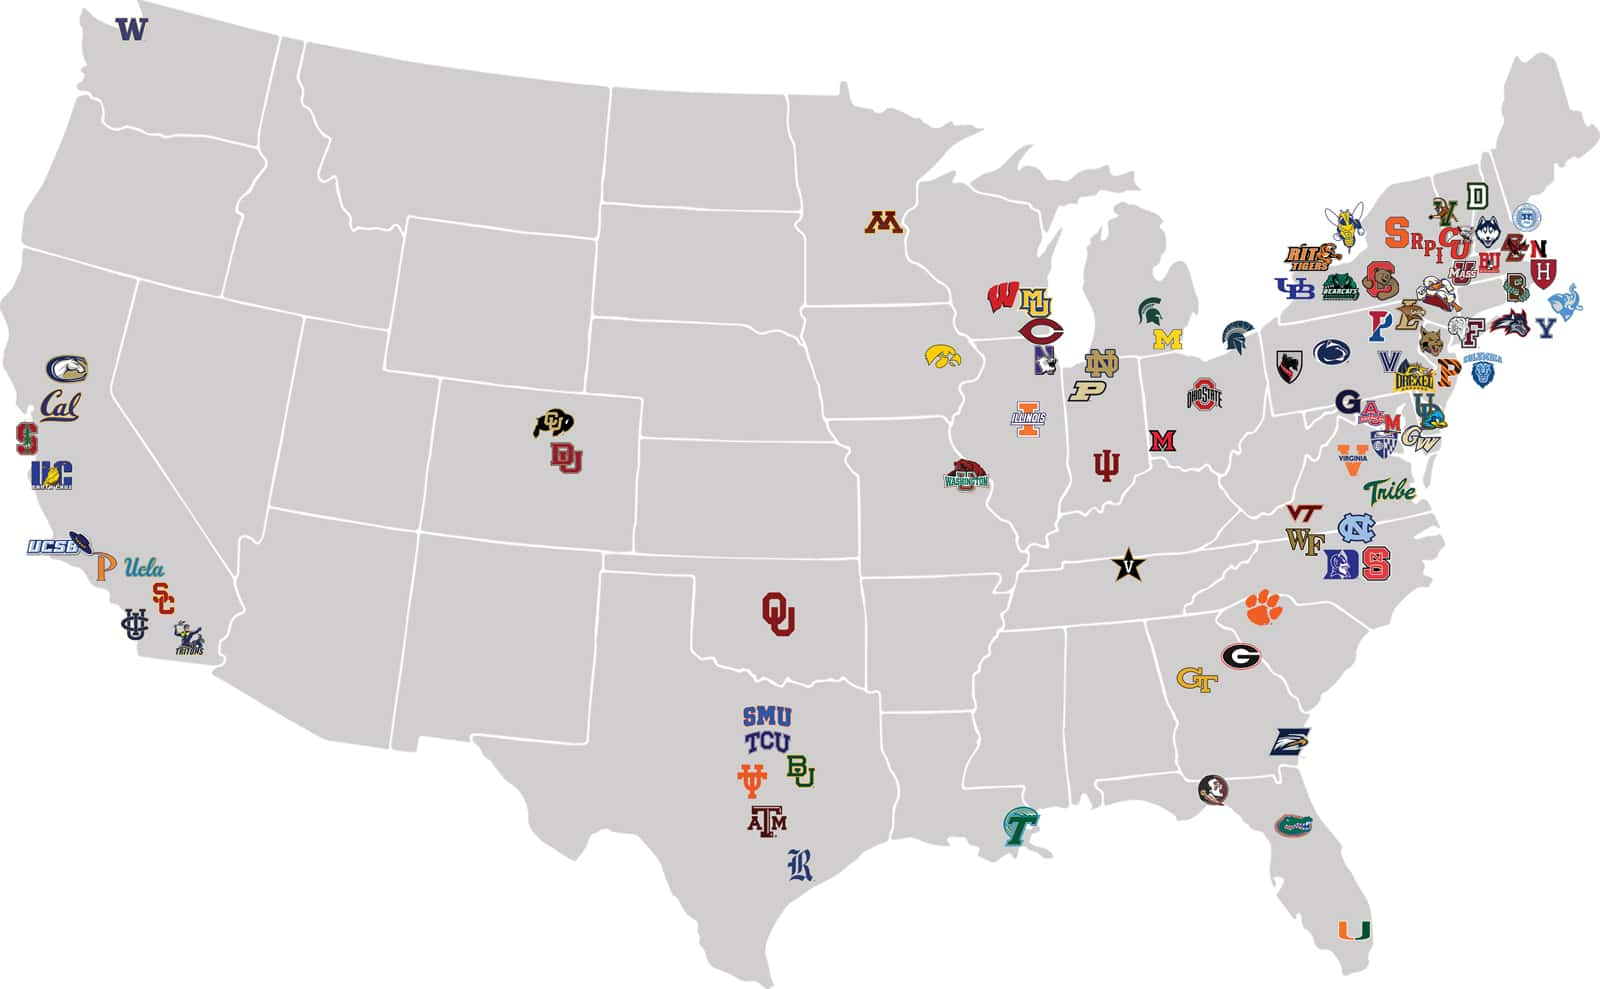 United states map with universities